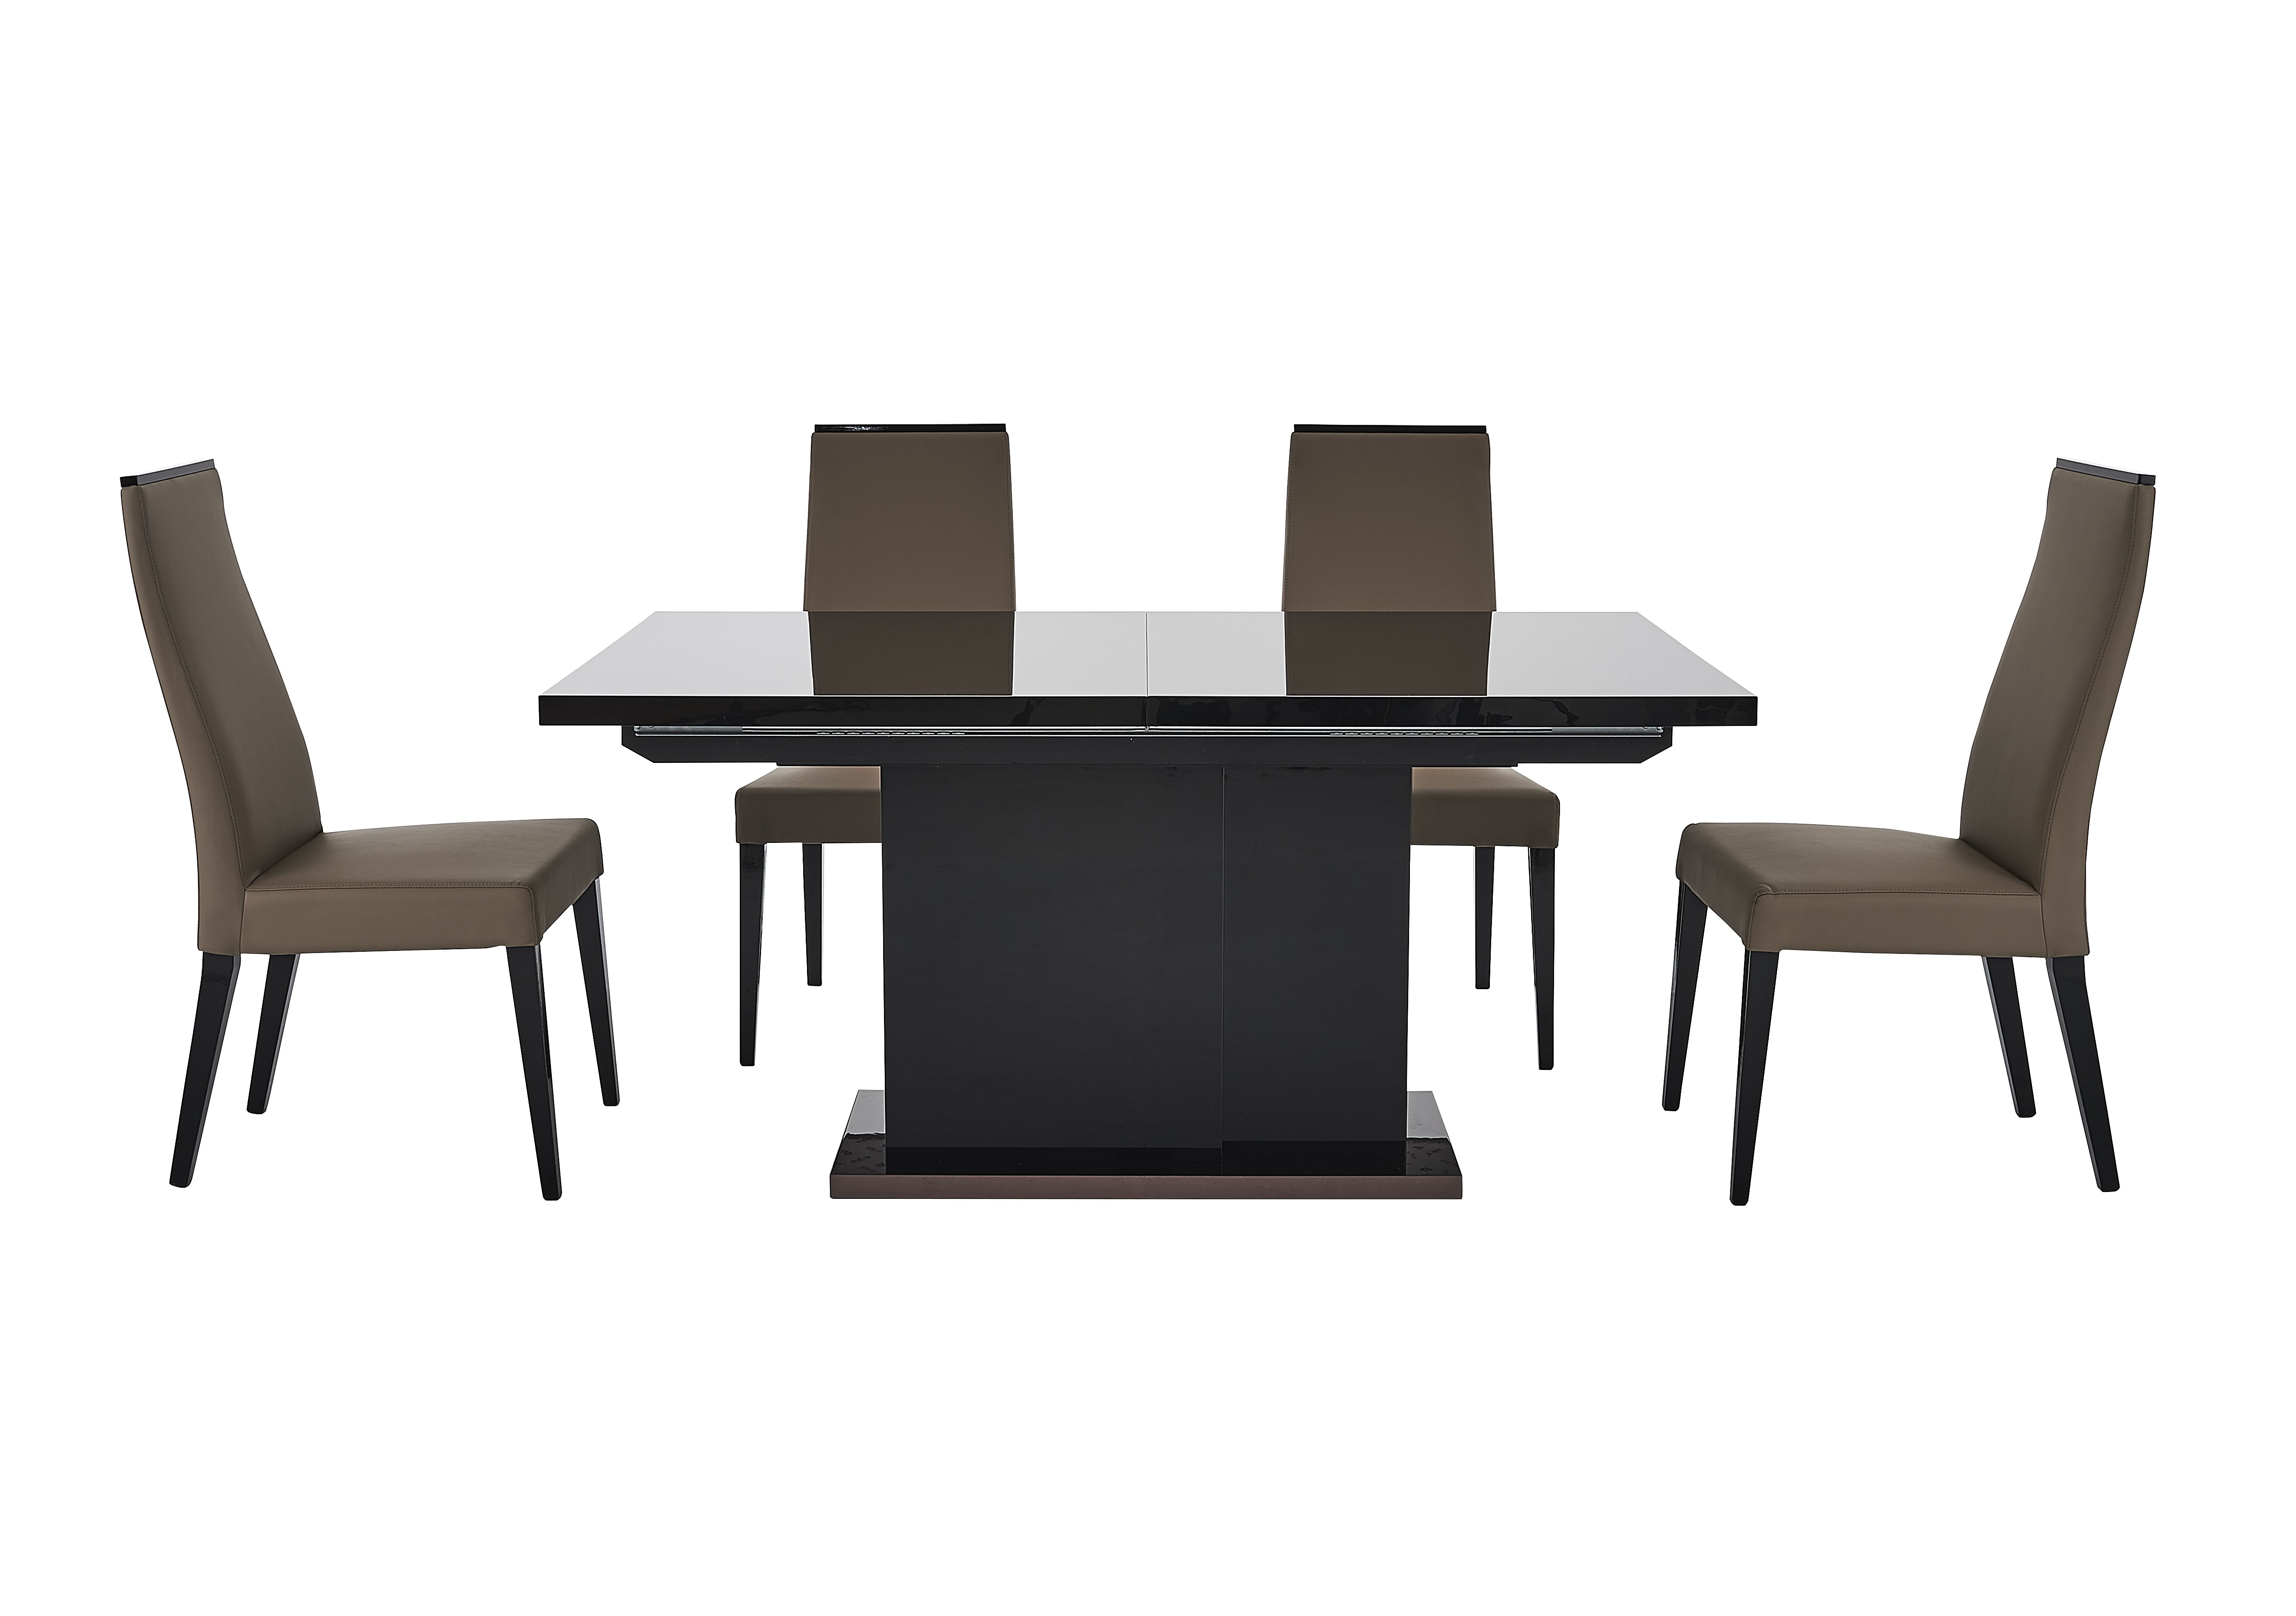 Furniture Village Glass Dining Table marco polo extending dining table and 4 chairs - alf - furniture